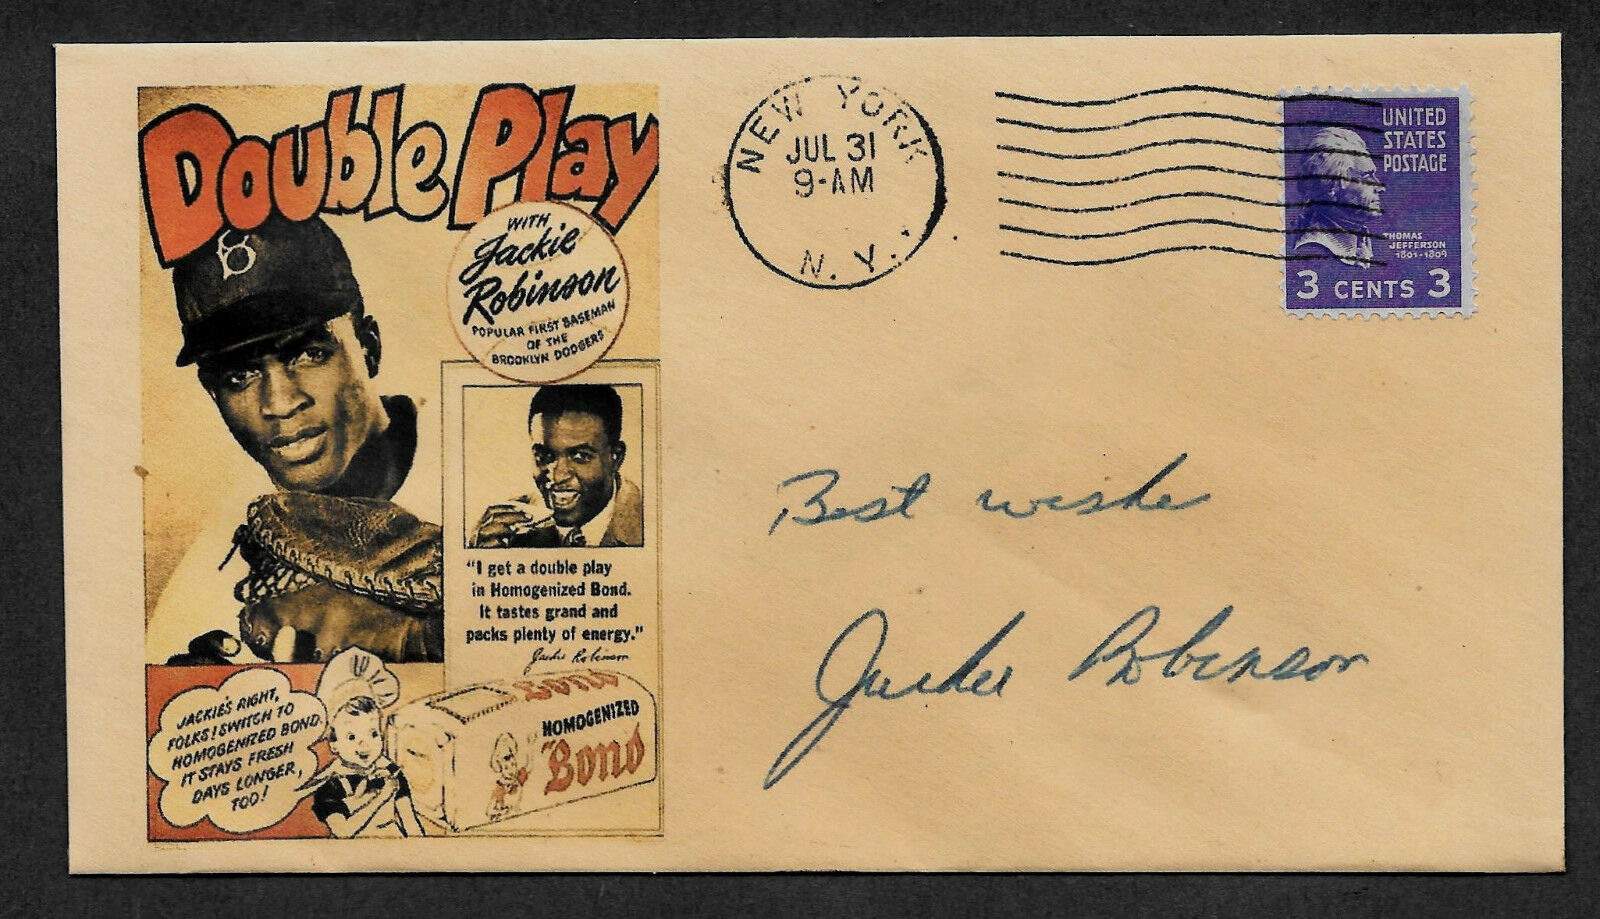 Jackie robinson bond bread ad featured on ltd. edt. collector's envelope op922